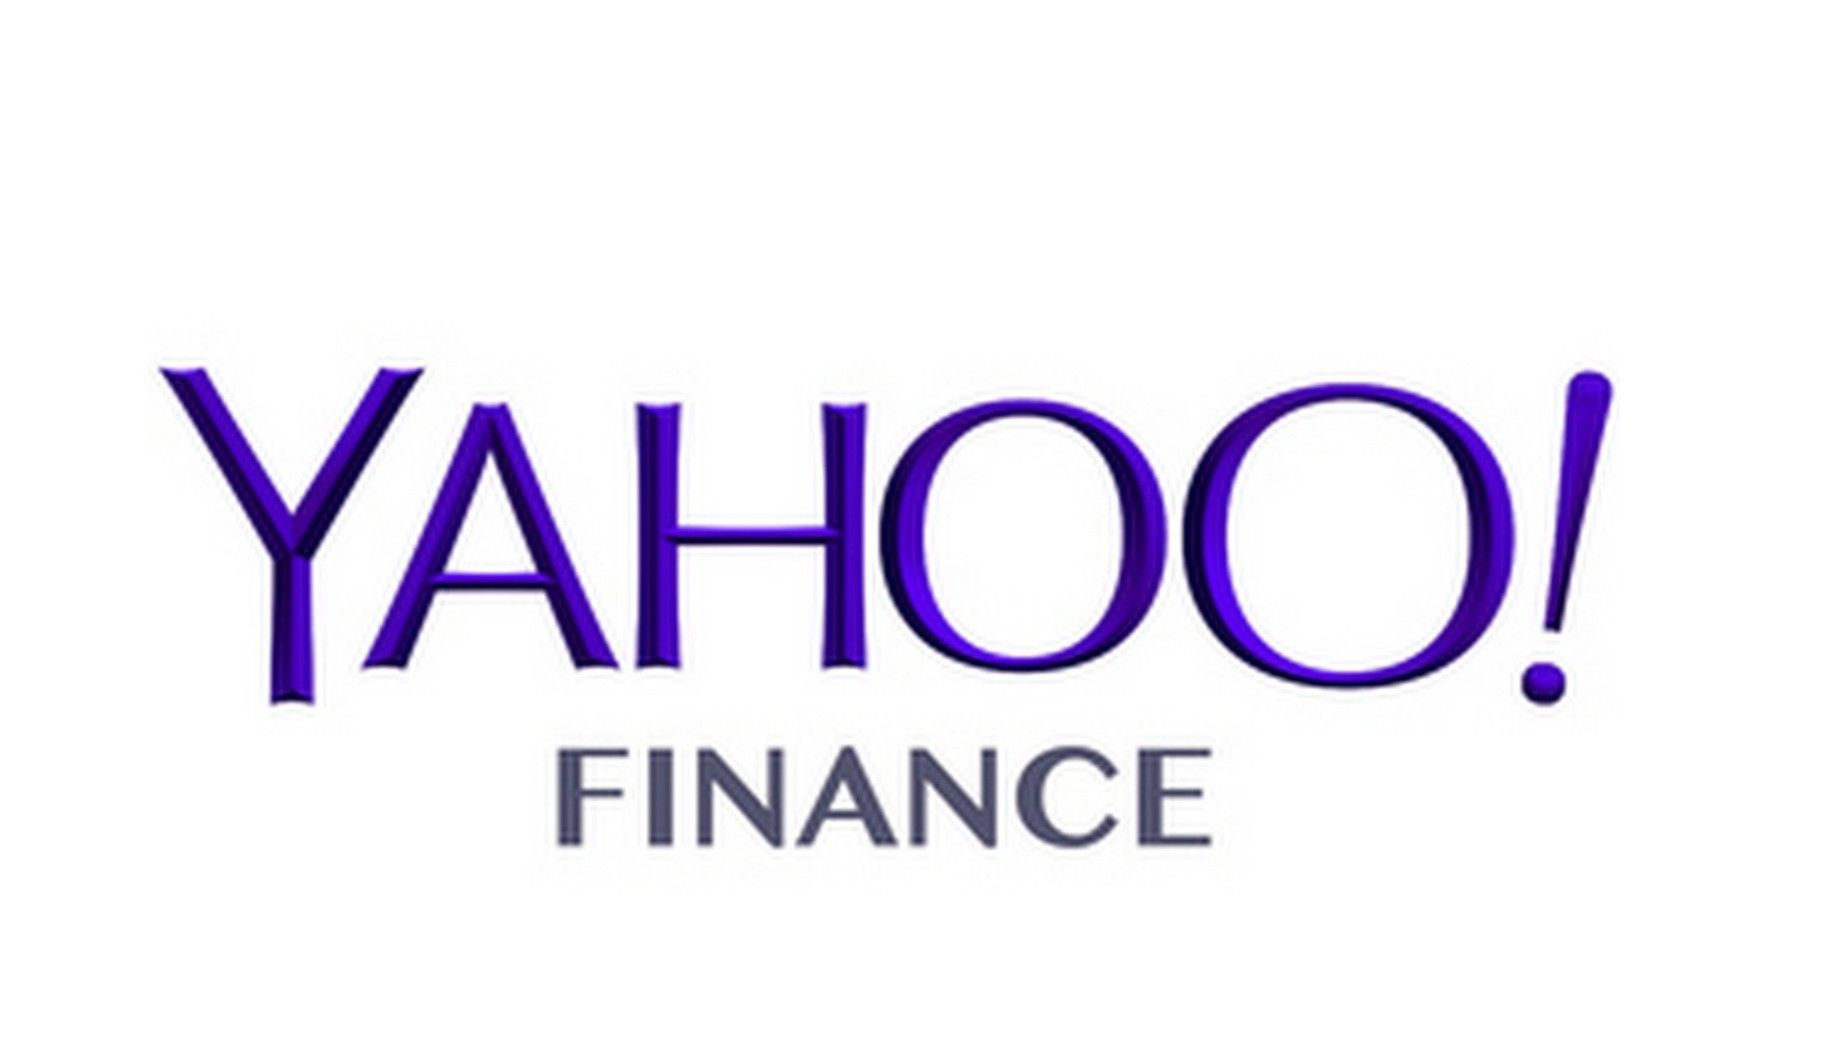 Yahoo! Finance Rolls Out Bitcoin (BTC), Ethereum (ETH) and